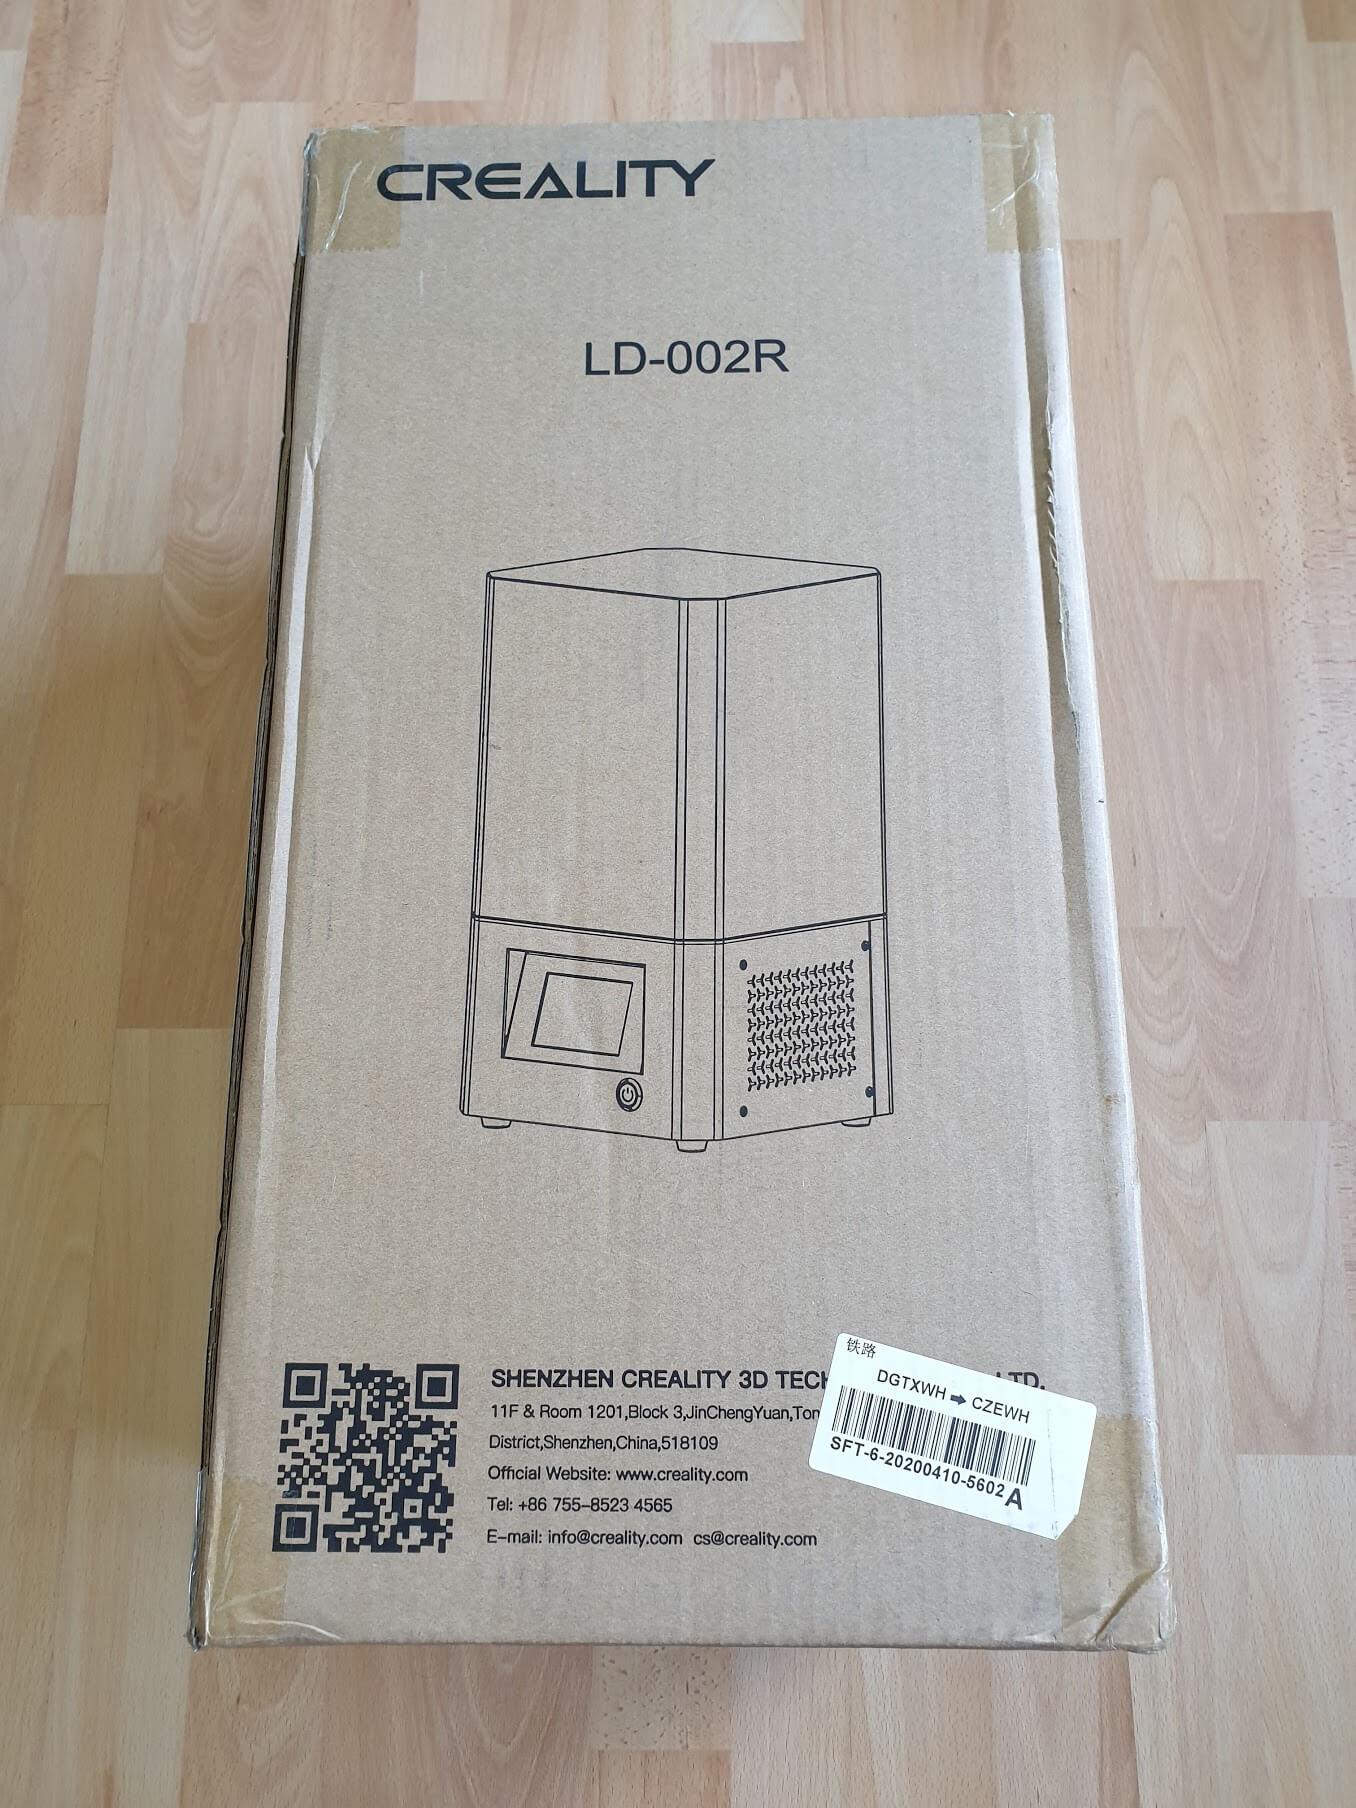 Creality-LD-002R-Packaging-1